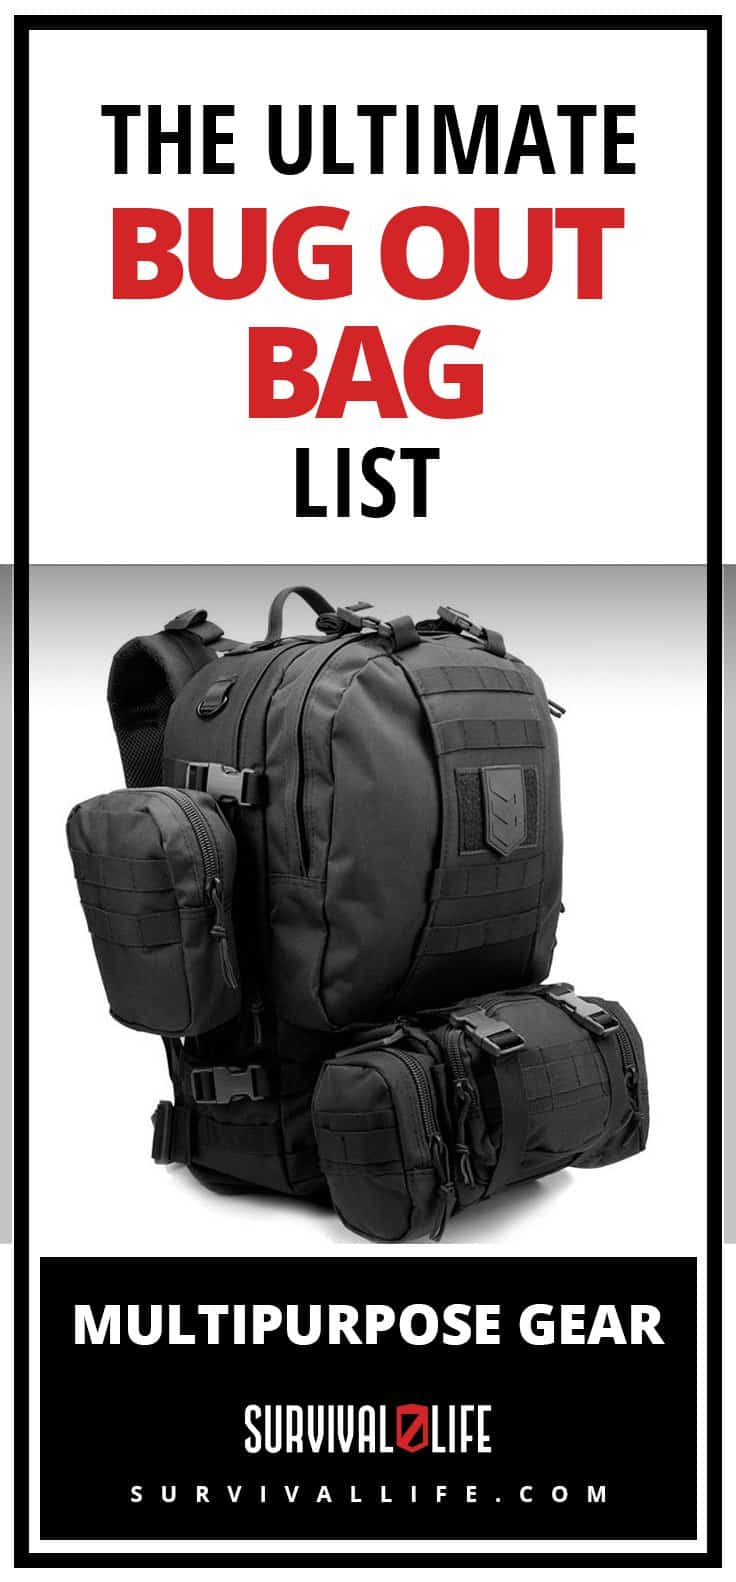 Bug Out Bug | The Ultimate Bug Out Bag List: Multipurpose Gear